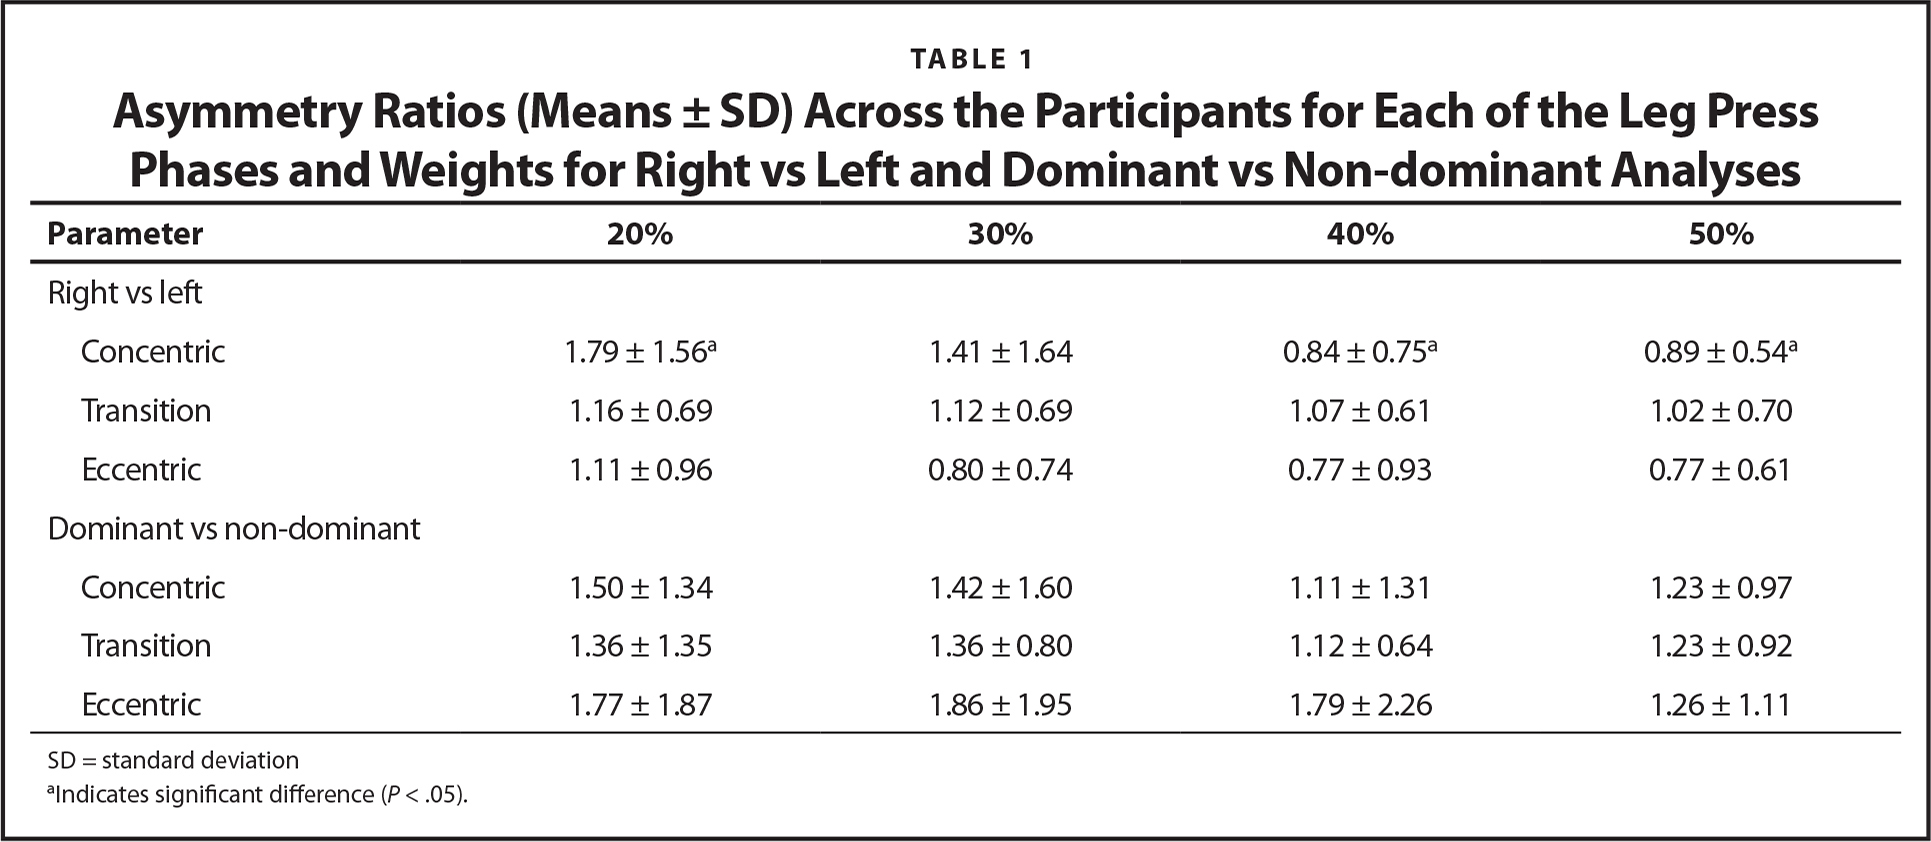 Asymmetry Ratios (Means ± SD) Across the Participants for Each of the Leg Press Phases and Weights for Right vs Left and Dominant vs Non-dominant Analyses